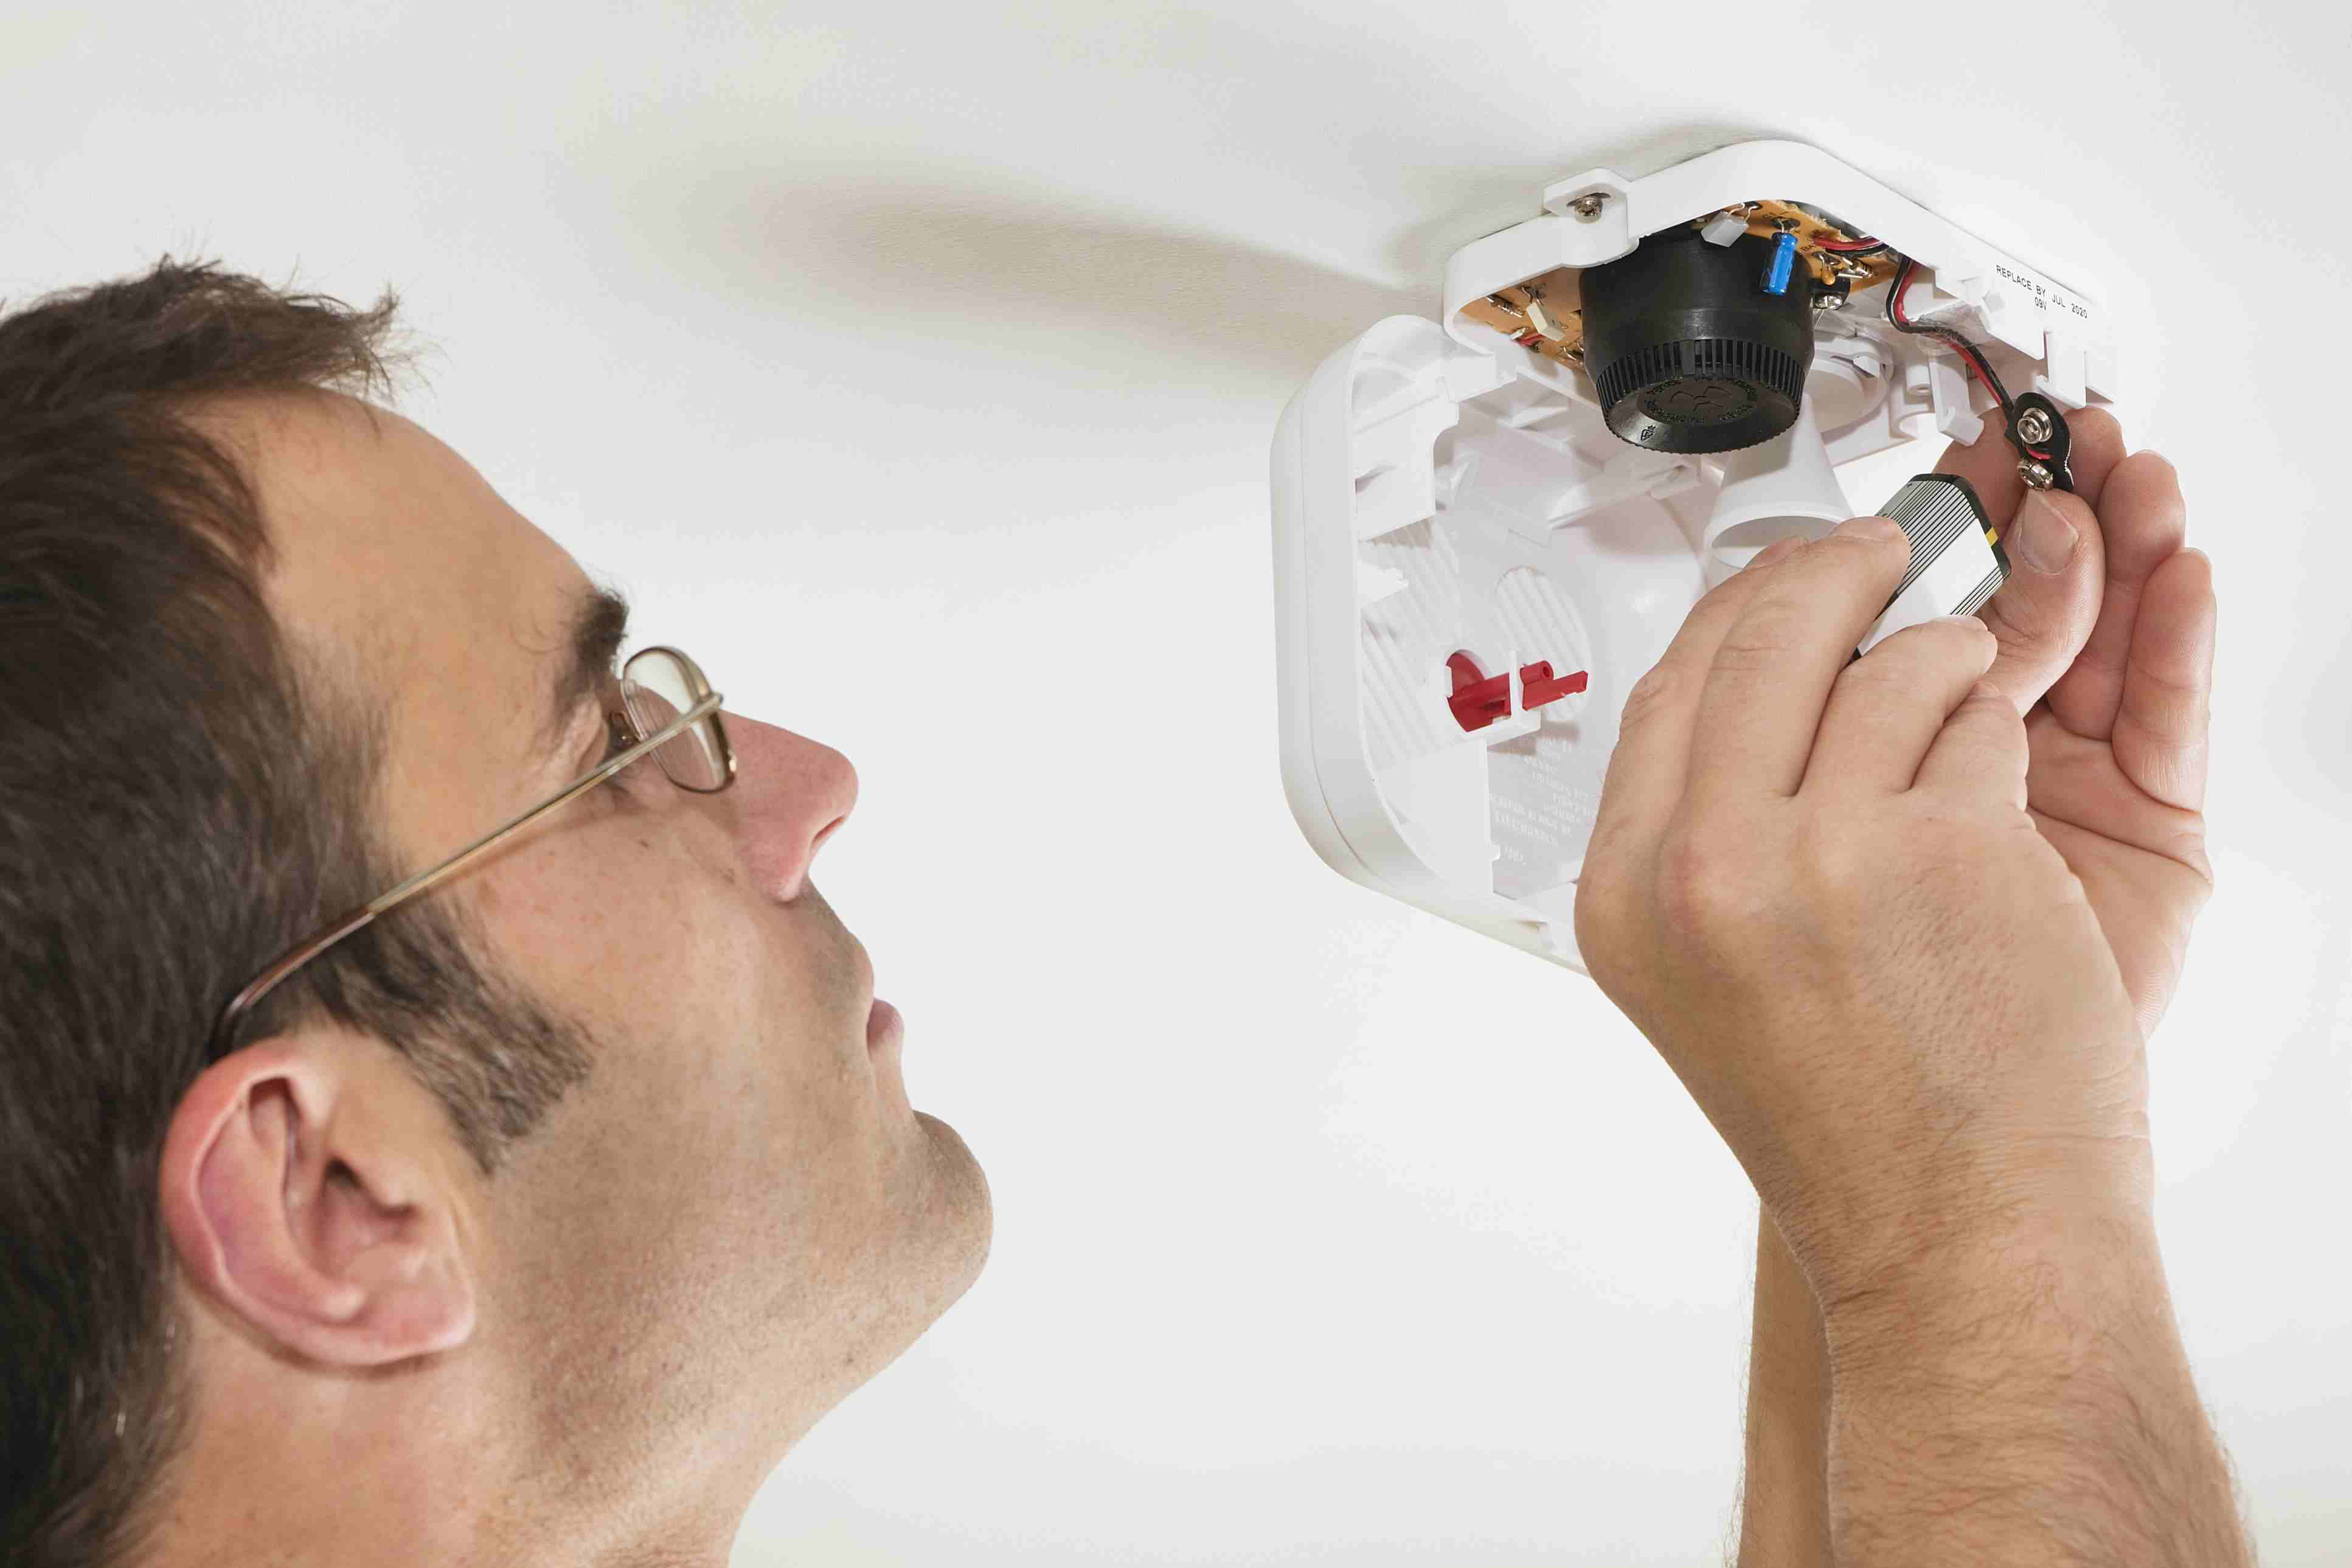 Where To Find Gold Recycle And Use Scrap Simple Recovery From Circuit Board Fingers In Smoke Detectors